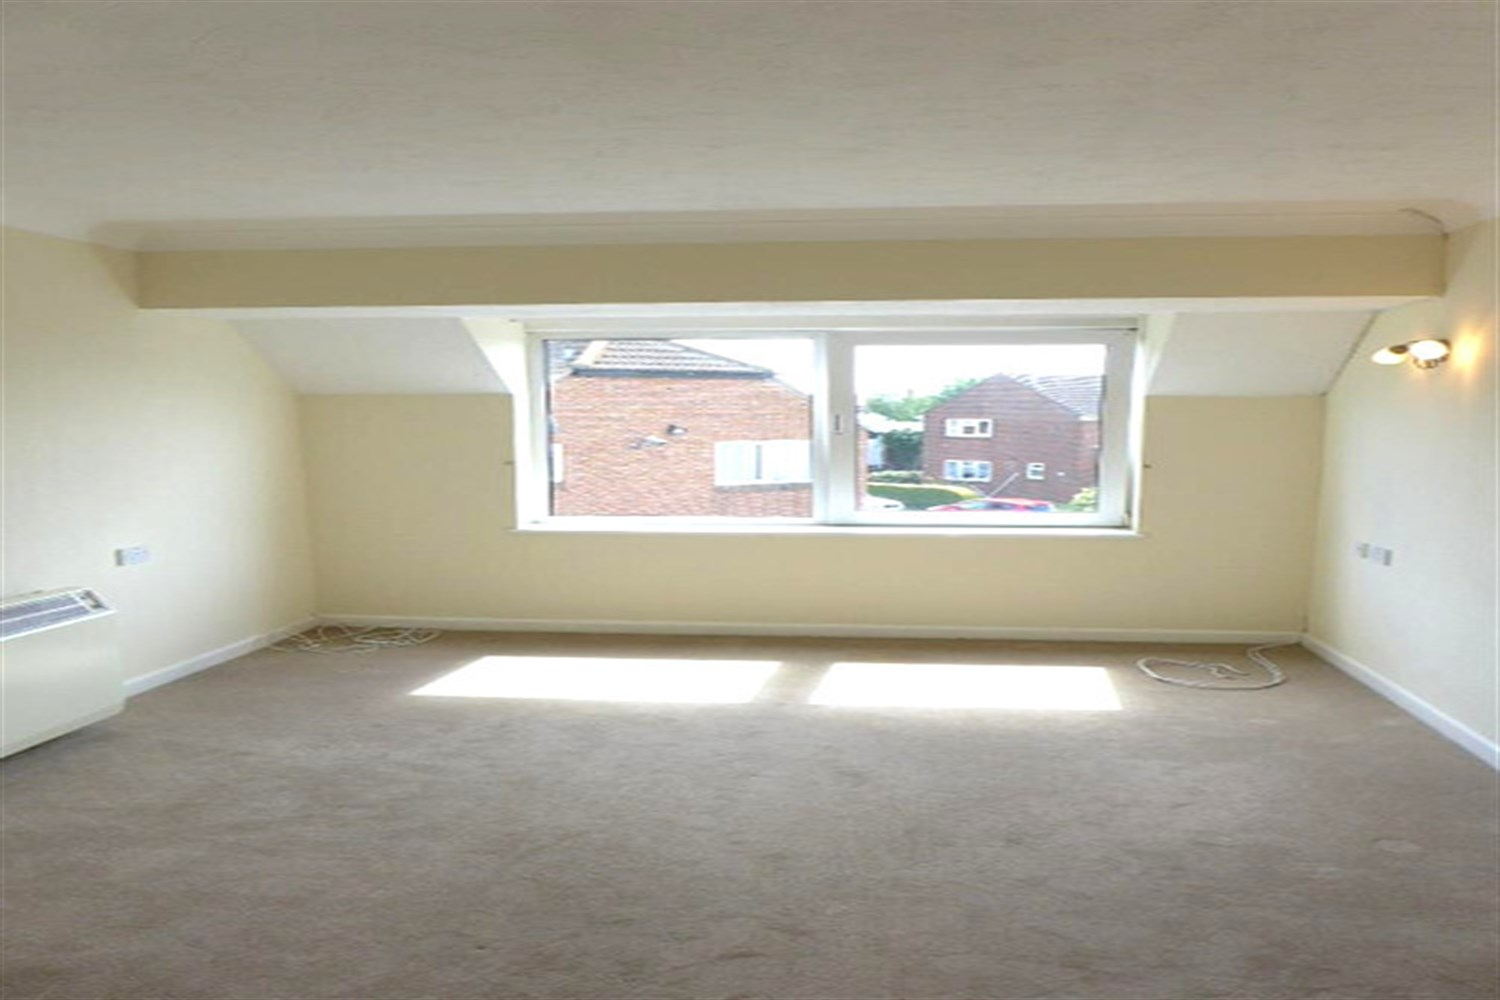 Coggeshall, Colchester, Essex 1 bedroom to let